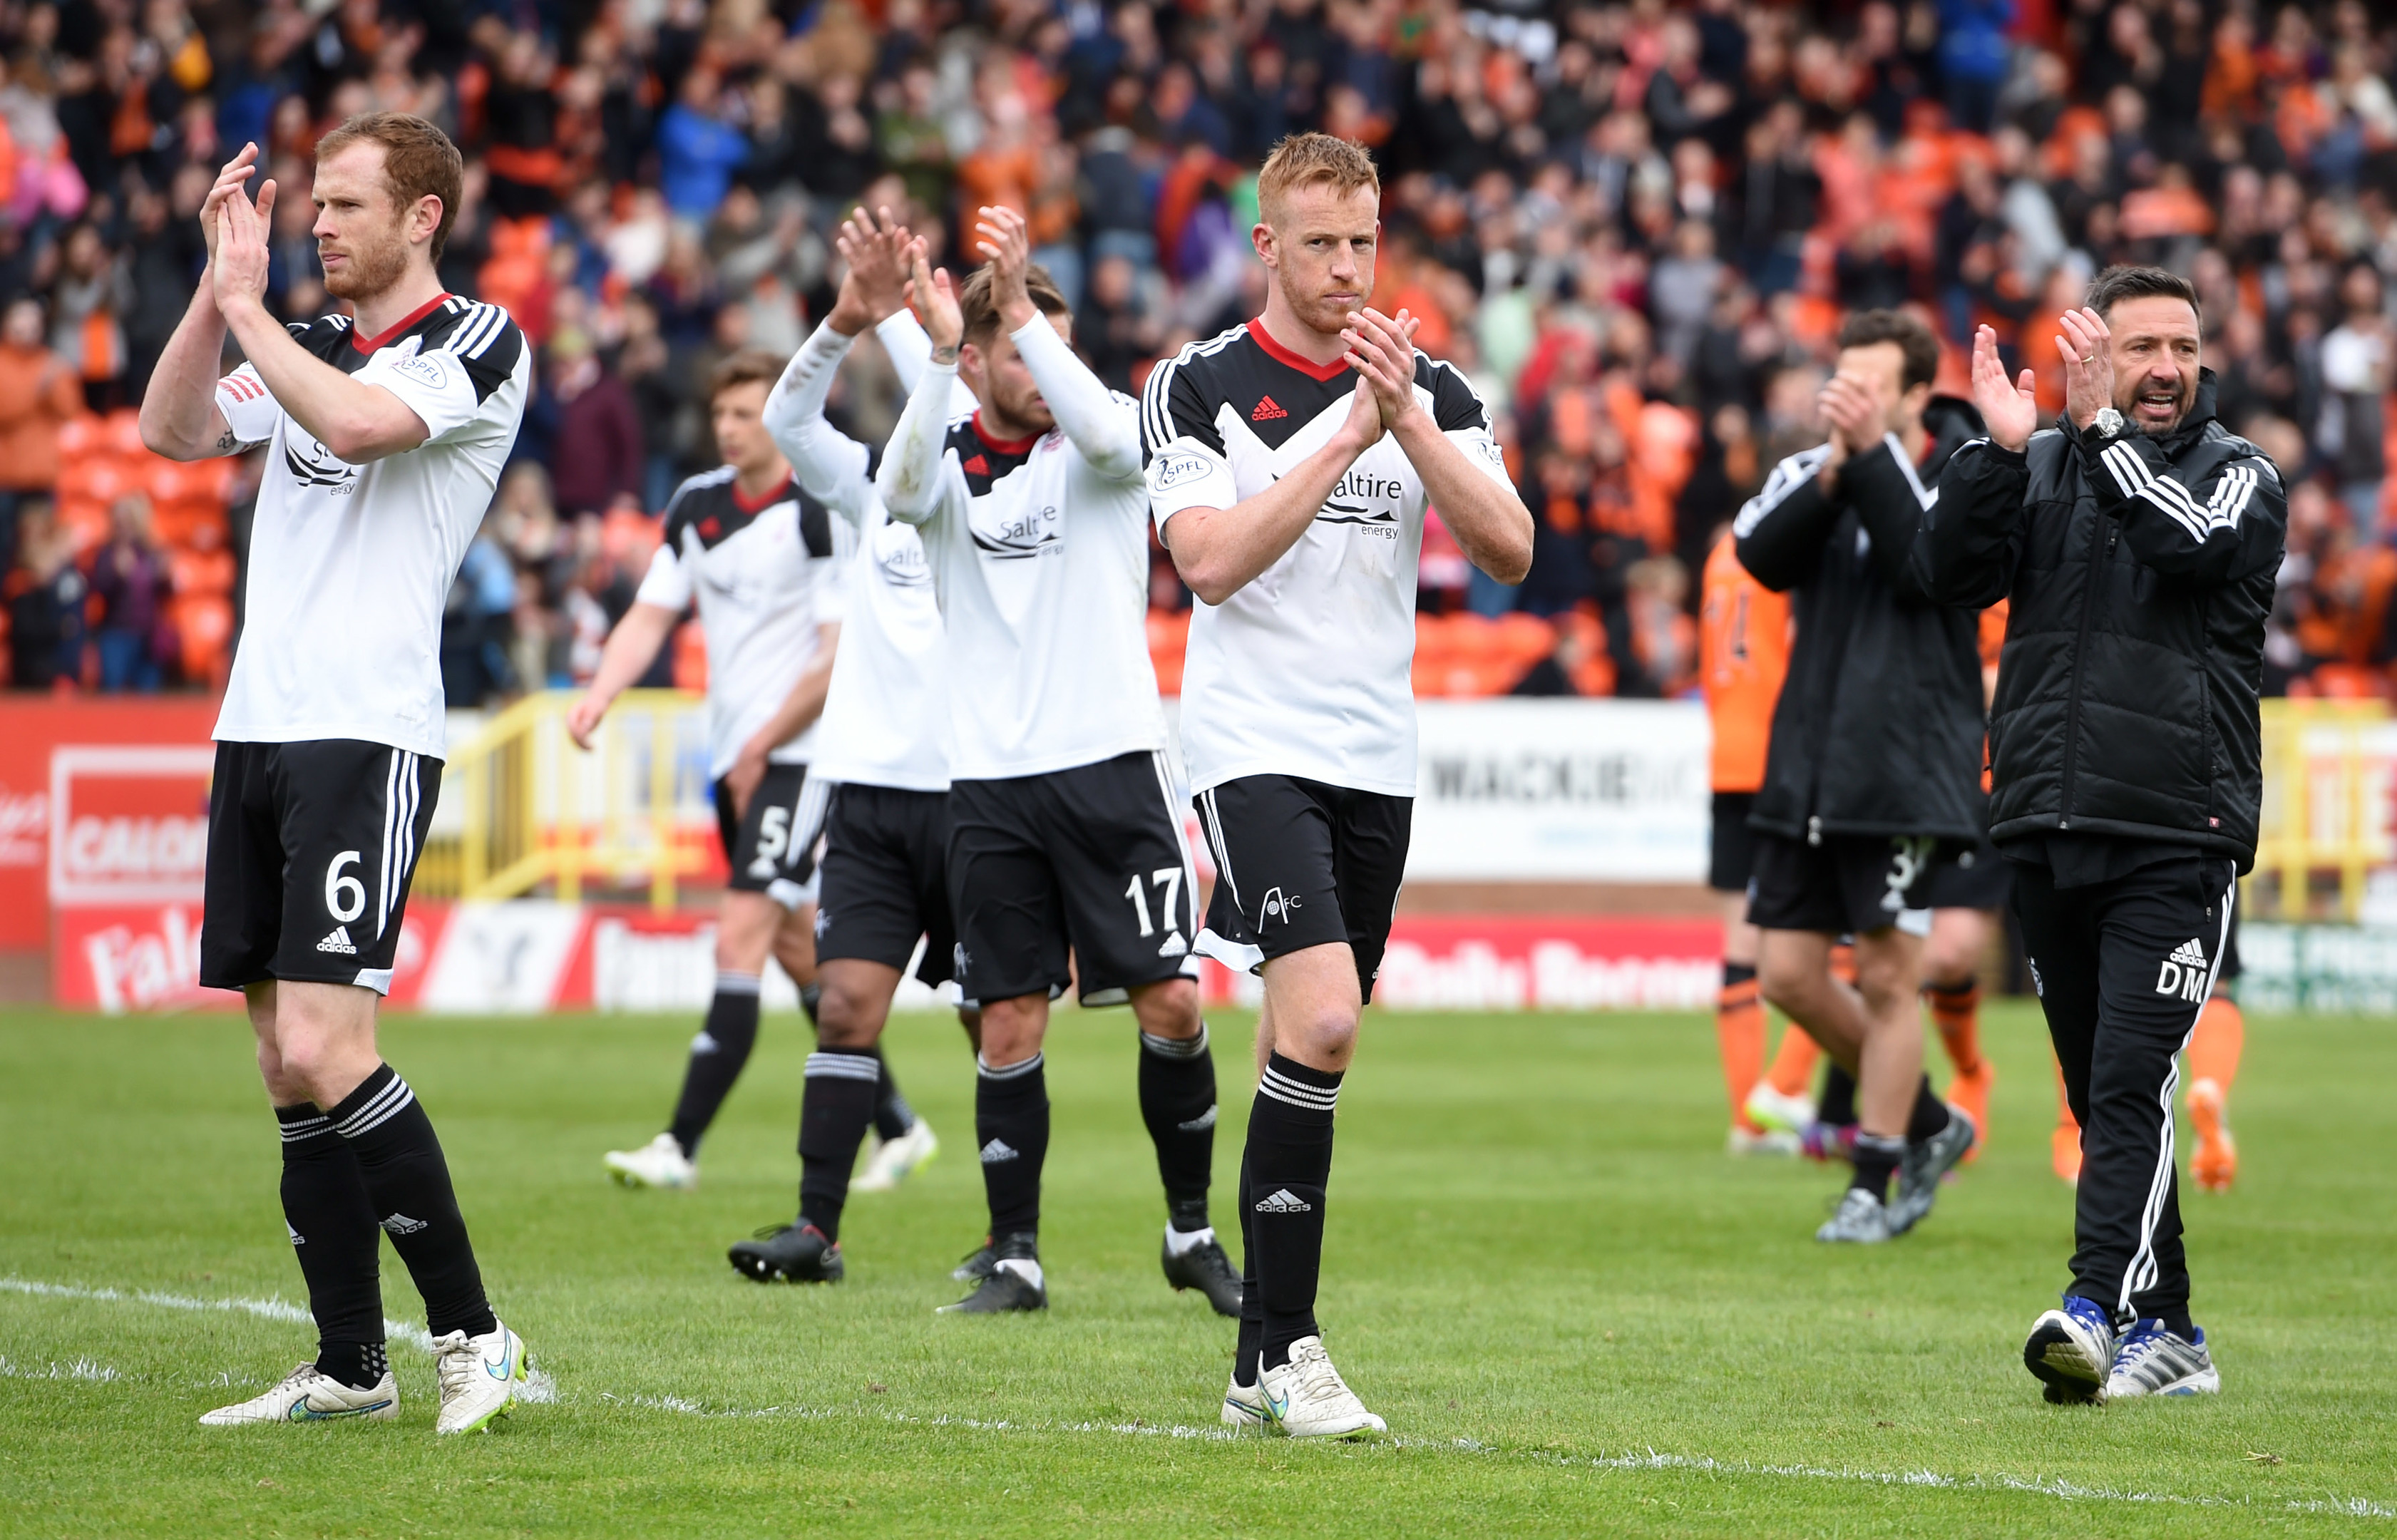 Dons boss Derek McInnes and his players applauded the fans at Tannadice